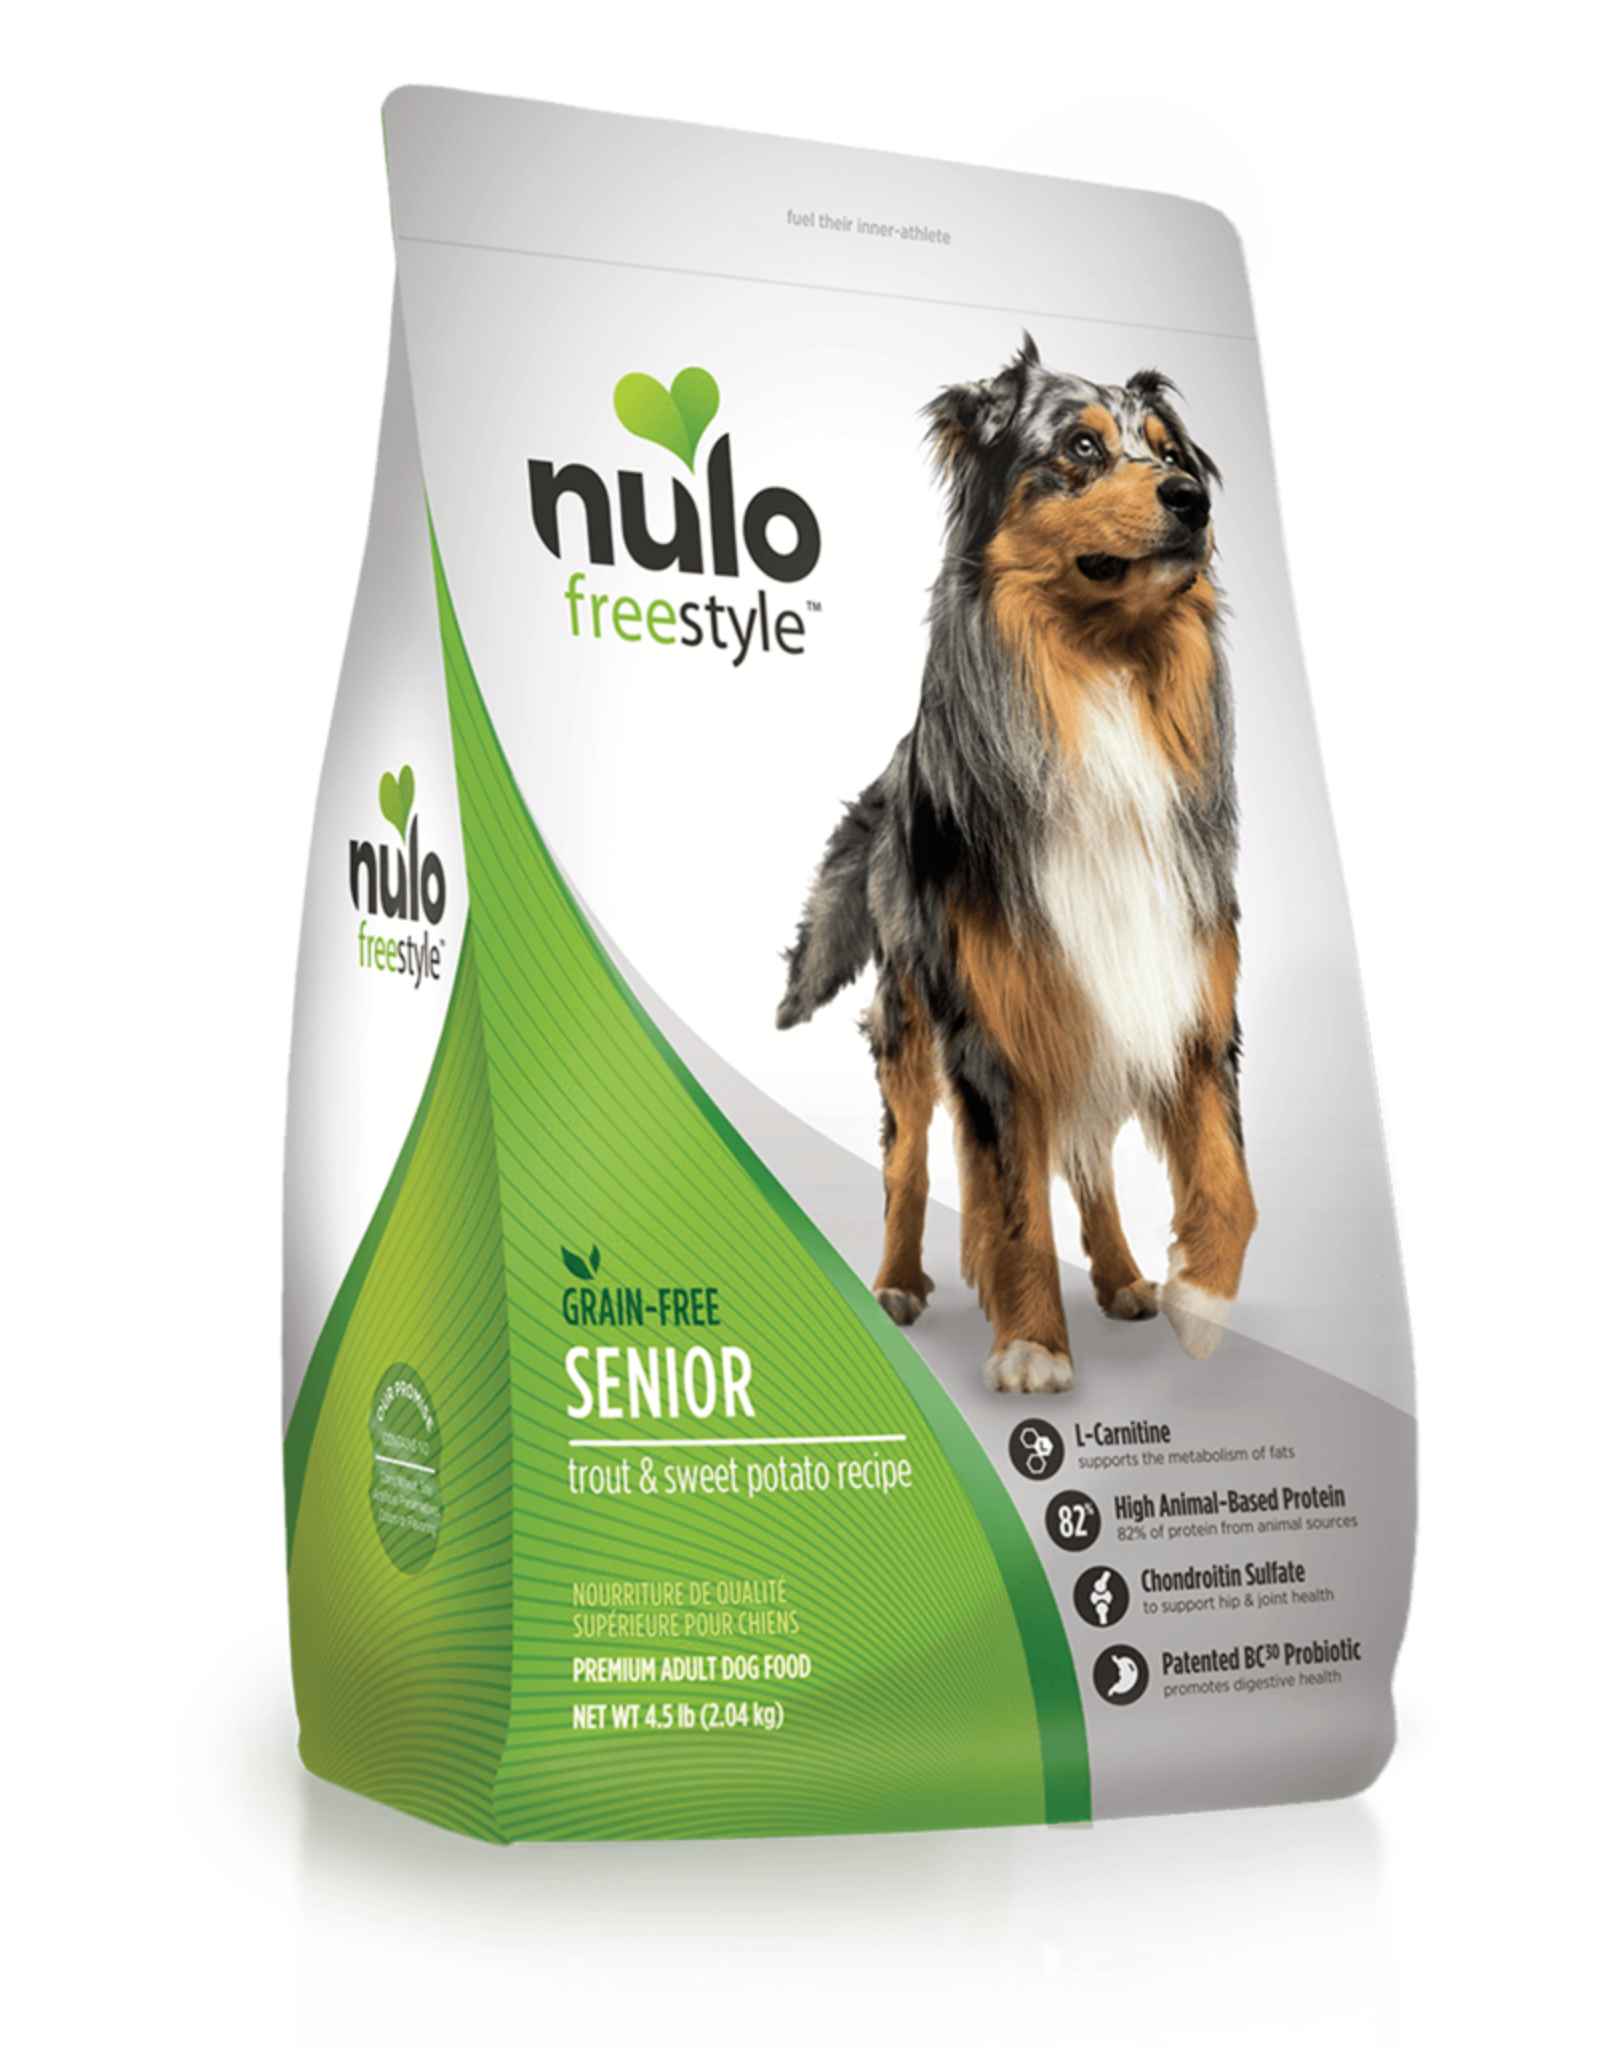 Nulo Dog Freestyle Trout & Sweet Potato Senior - Grain-Free 4.5lb